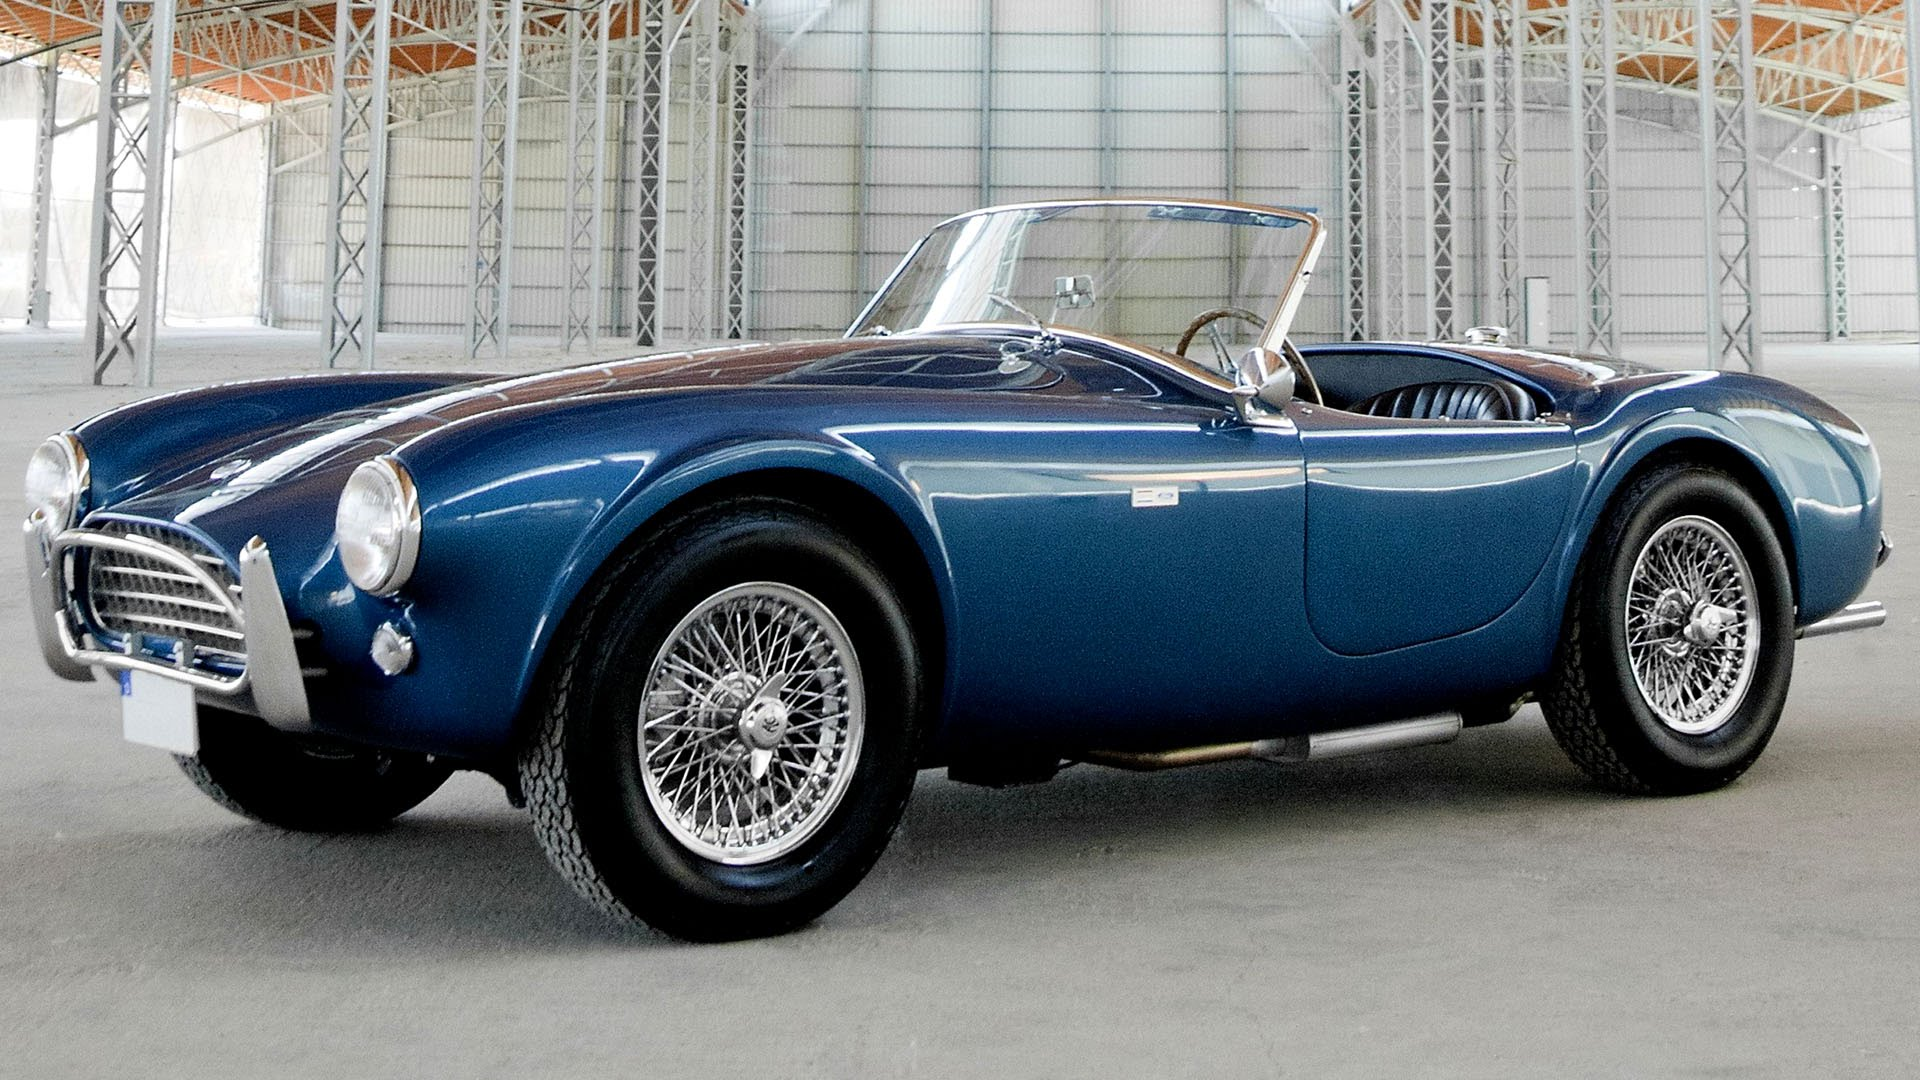 Classic British Sports Cars For Sale In Usa